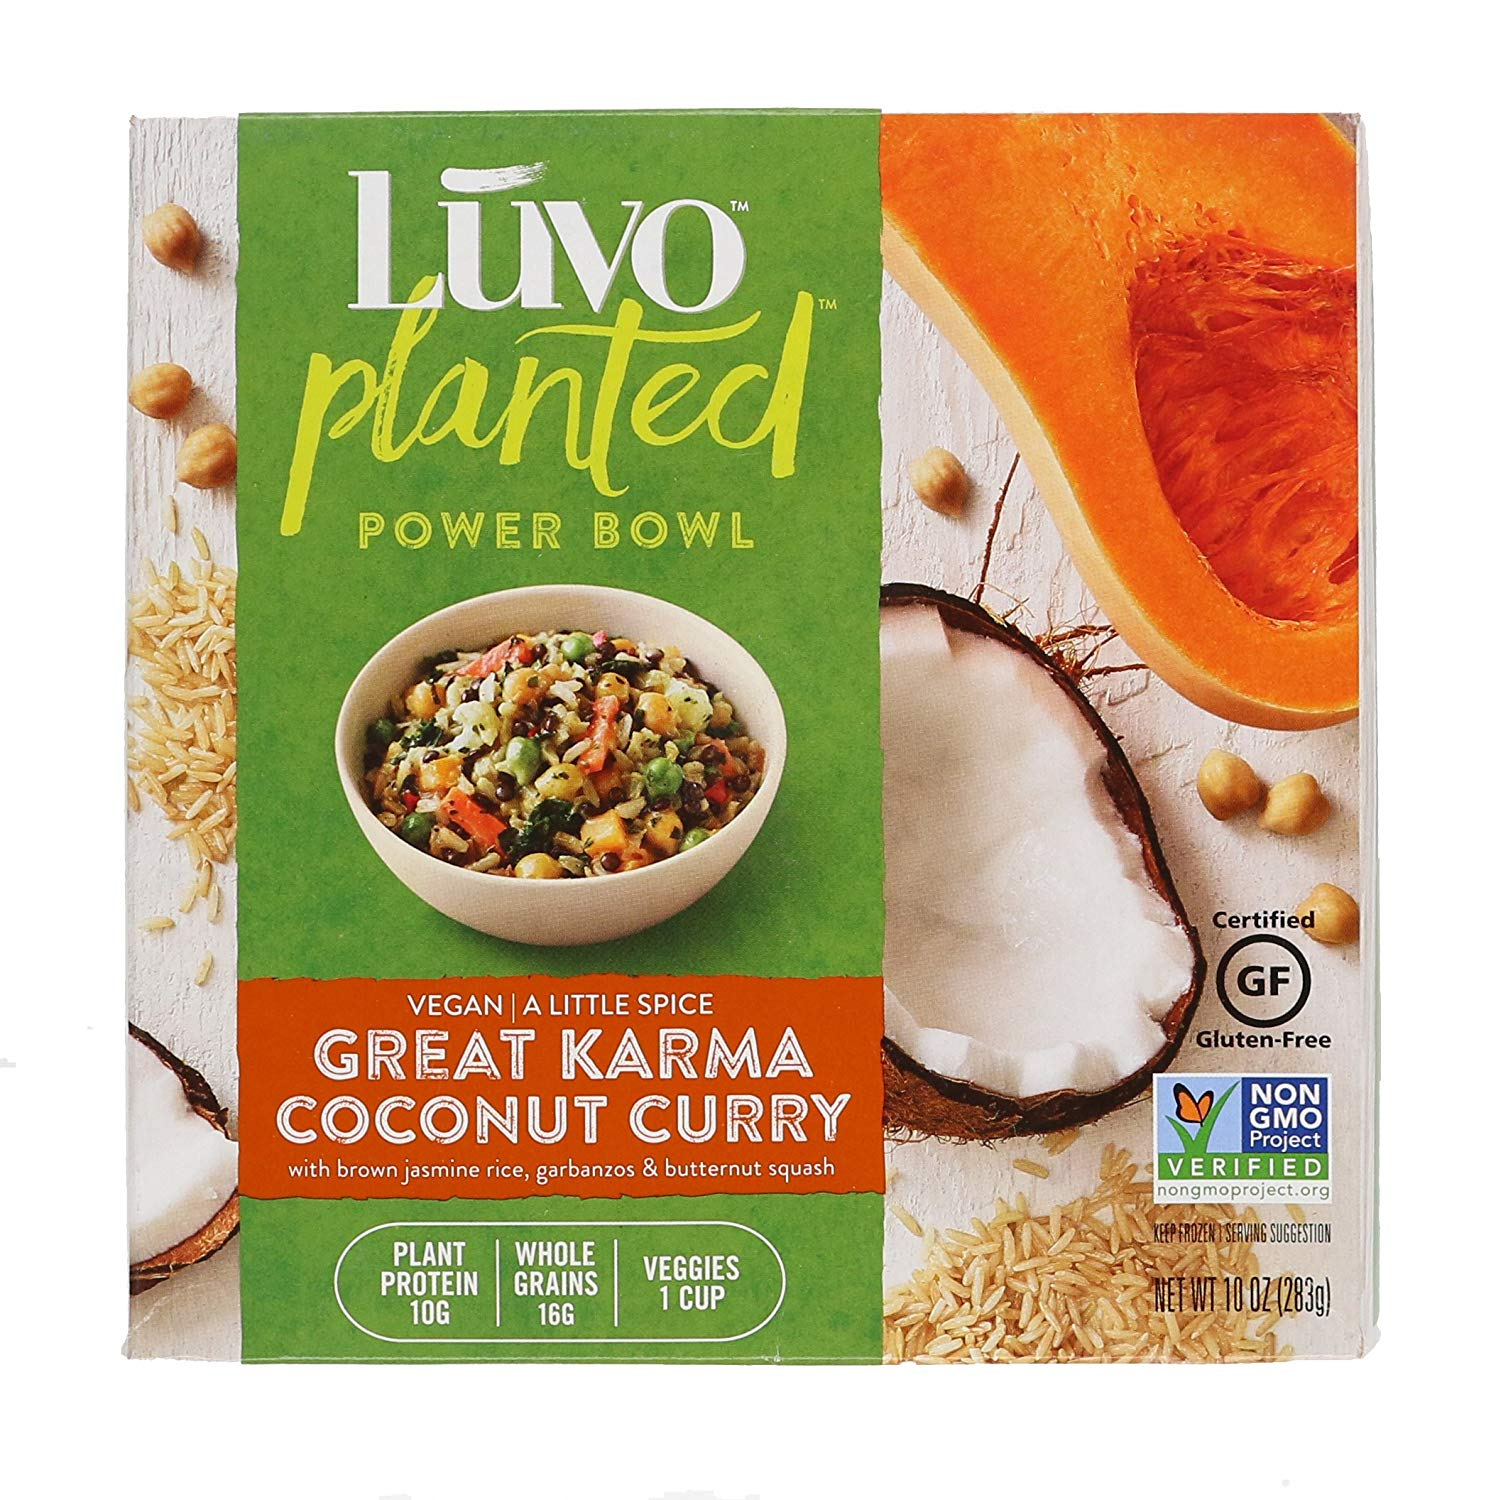 Check out my review of Luvo's Great Karma Coconut Curry Bowl  here !